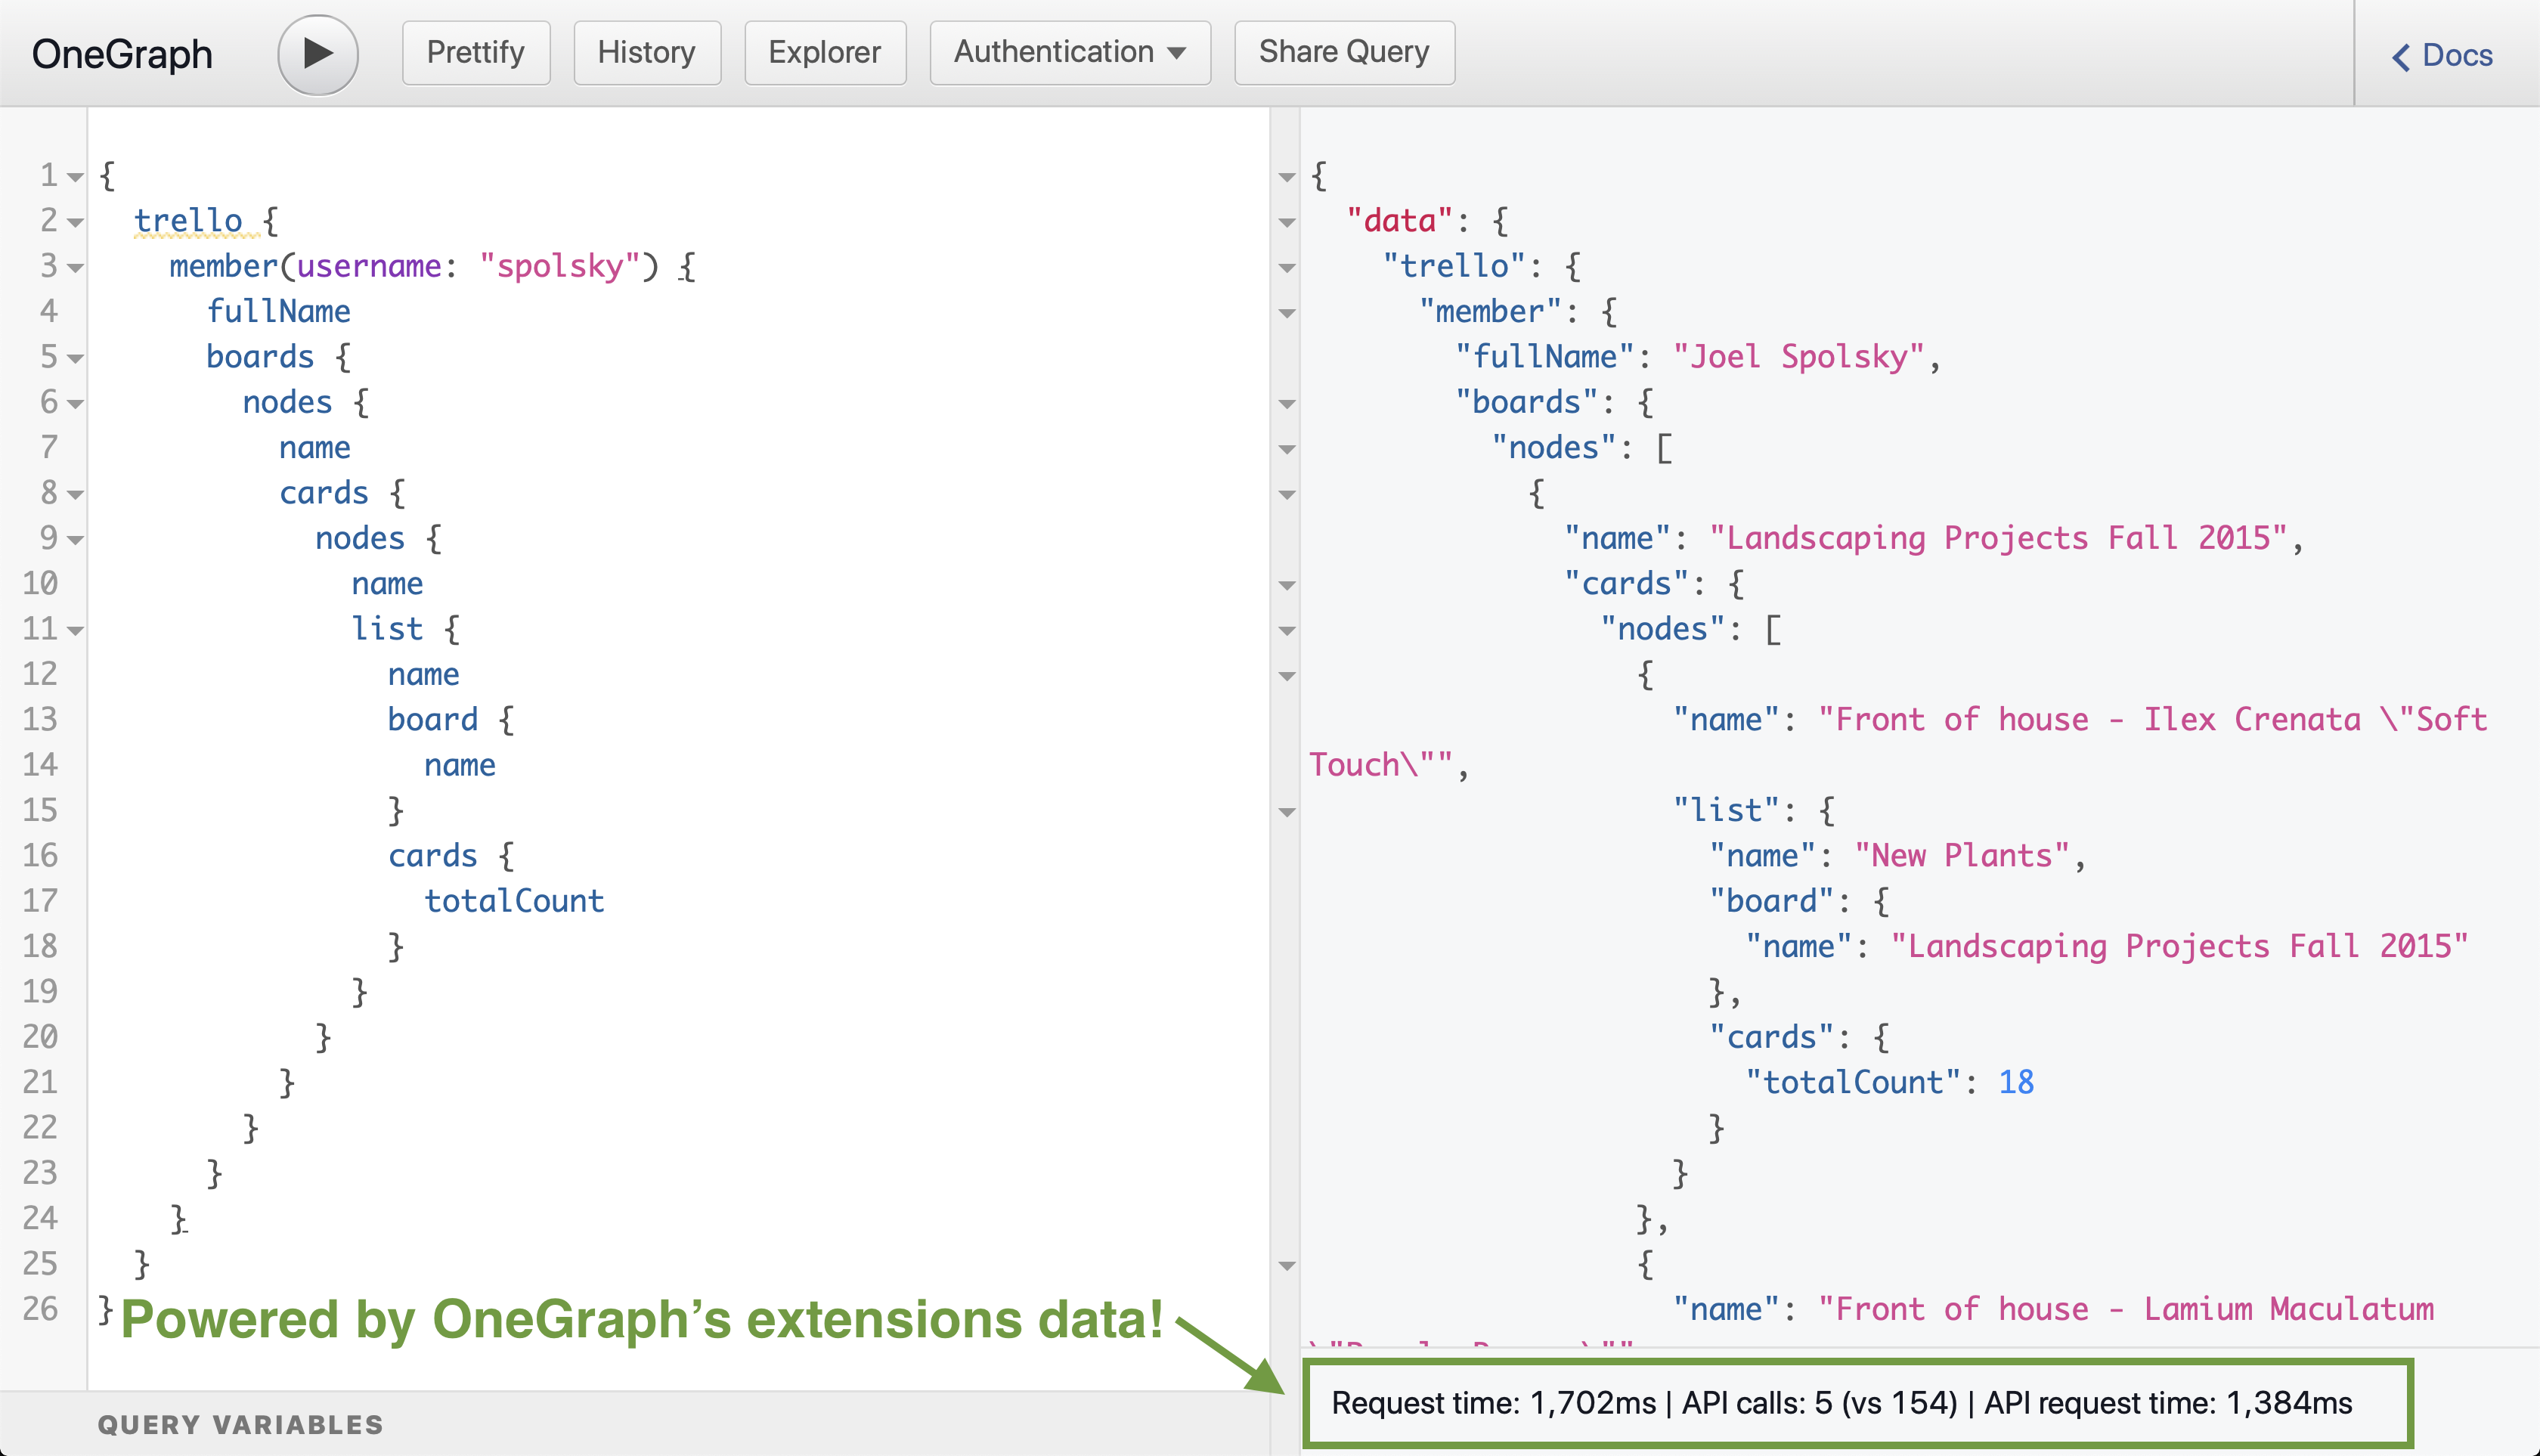 OneGraph extensions-powered metrics reporting